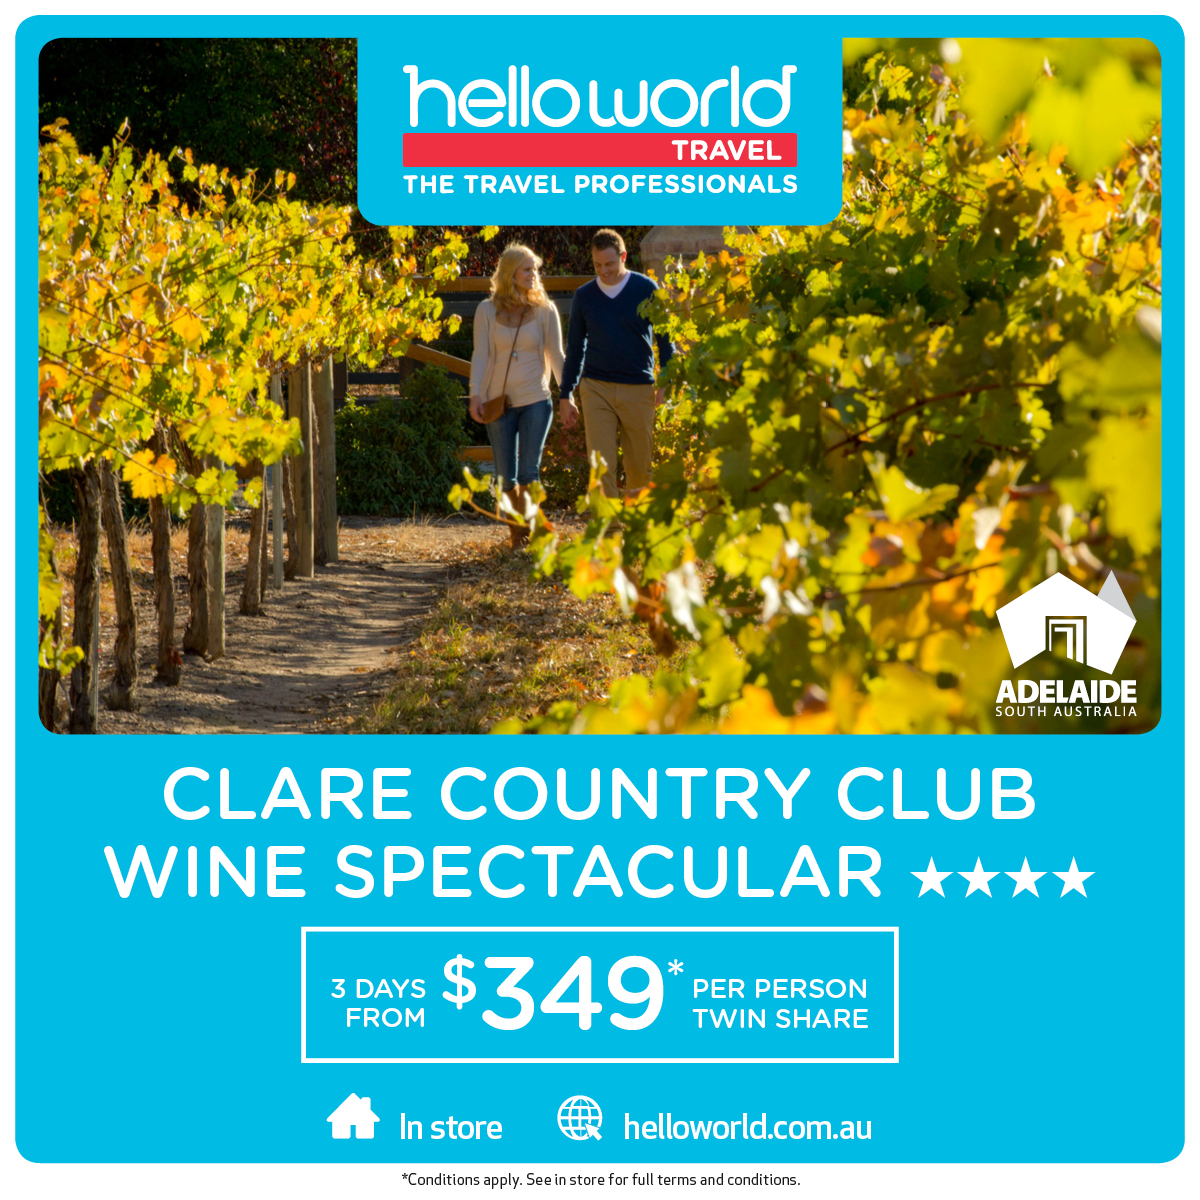 Clare Country Club Wine Spectacular